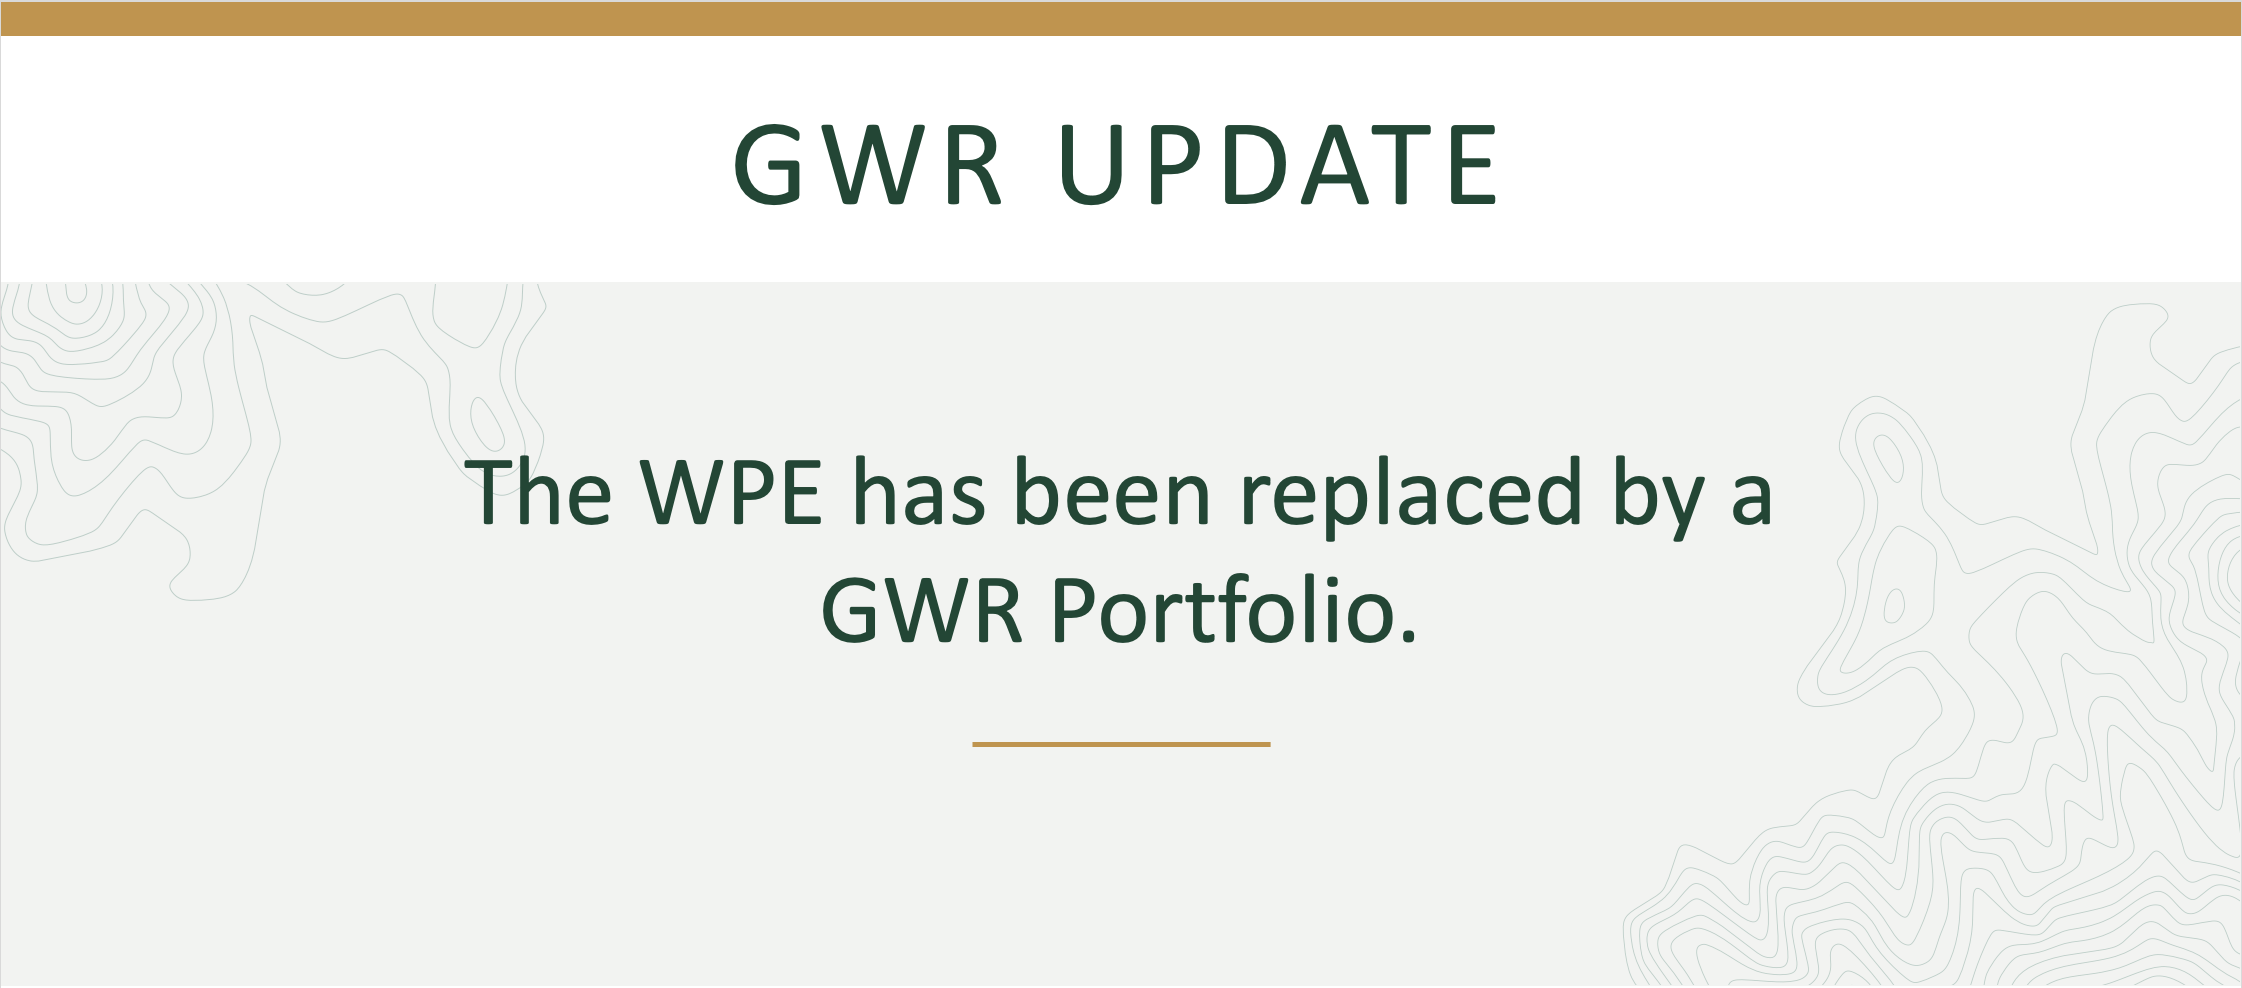 The WPE has been replaced by a GWR Portfolio.